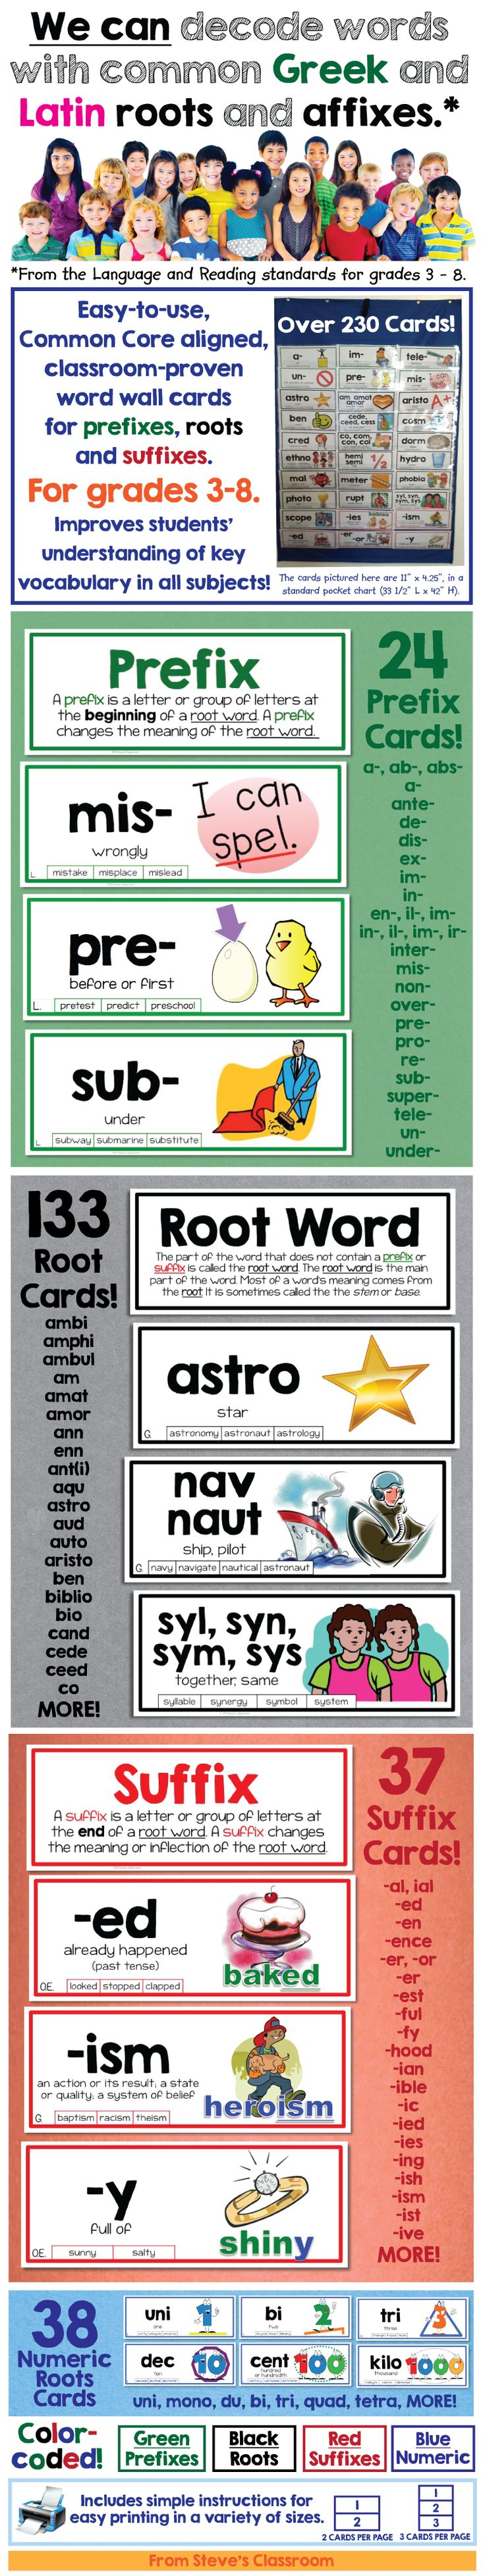 I've been using these word wall cards for roots and affixes in my classroom for years. It started a few school years ago, when I made cards for roots that my students encountered in my literacy and drawing classes. Over the years, I've added cards for science, math, and social studies teachers, too. This summer I had a chance to add even more, reorganize and color code them. There are over 240 cards in the set, covering all the common Greek, Latin and Anglo-Saxon prefixes, roots, and suffixes.: